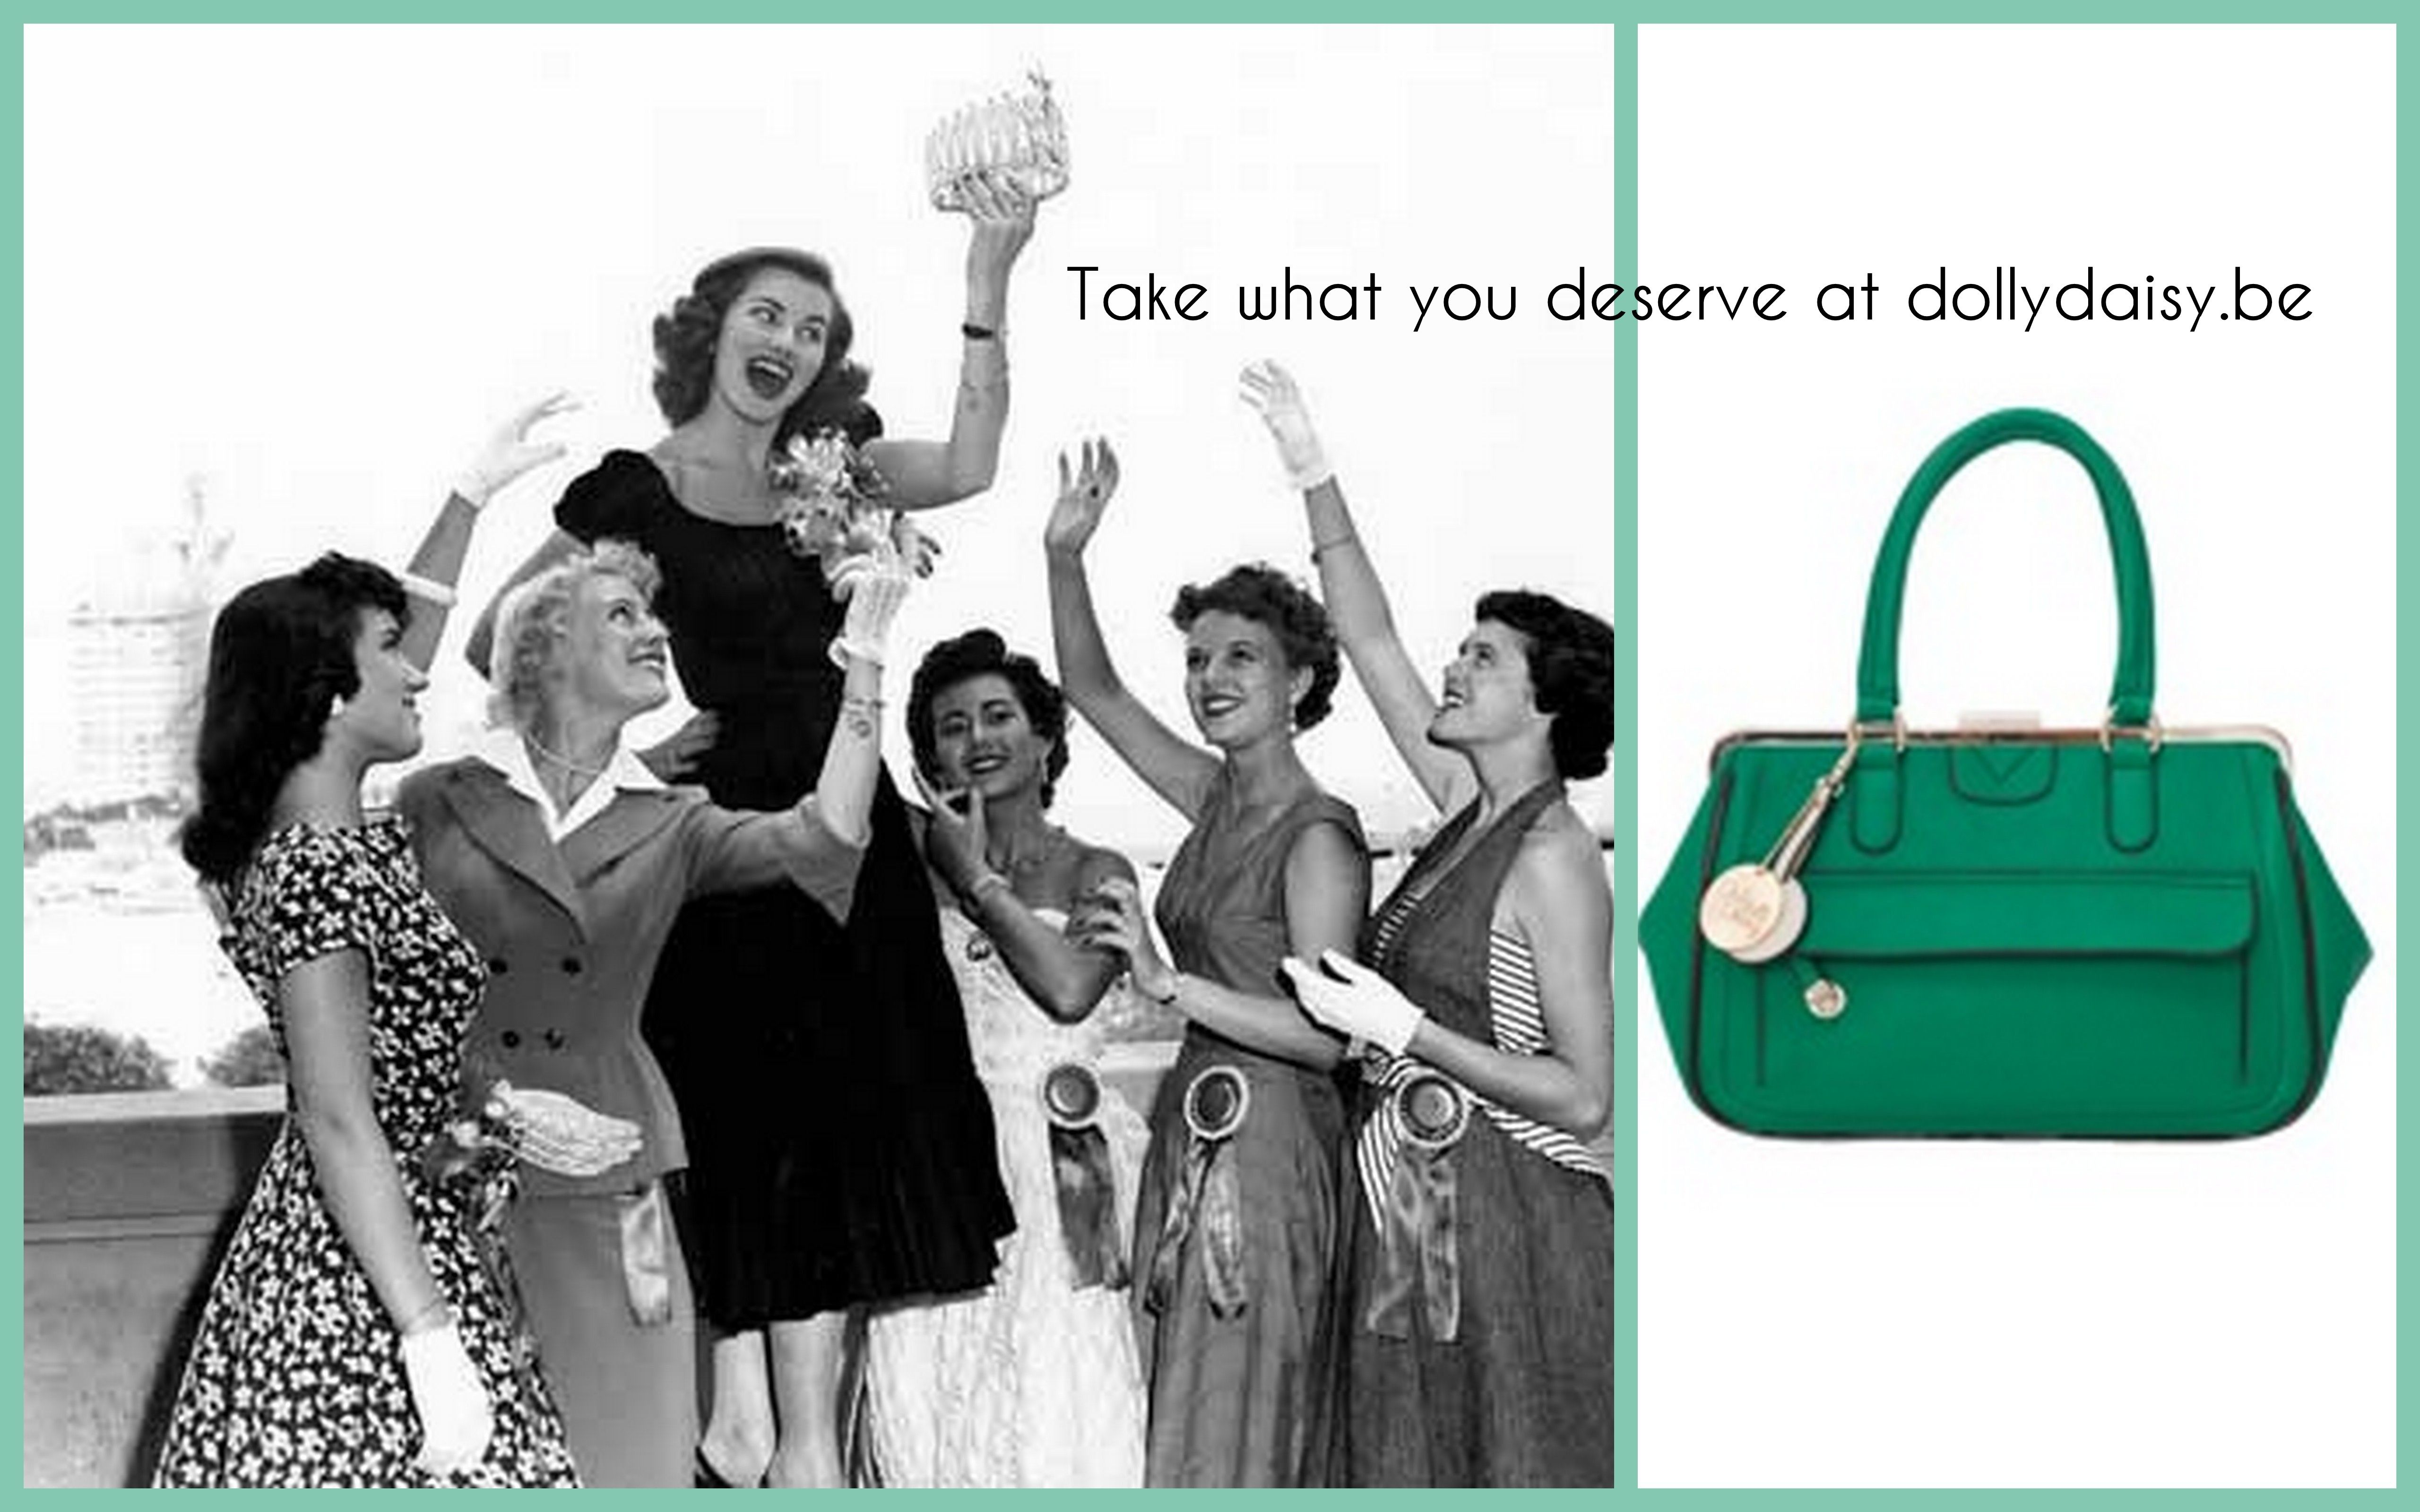 All women want a crown. Now, take what you deserve @ www.dollydaisy.be